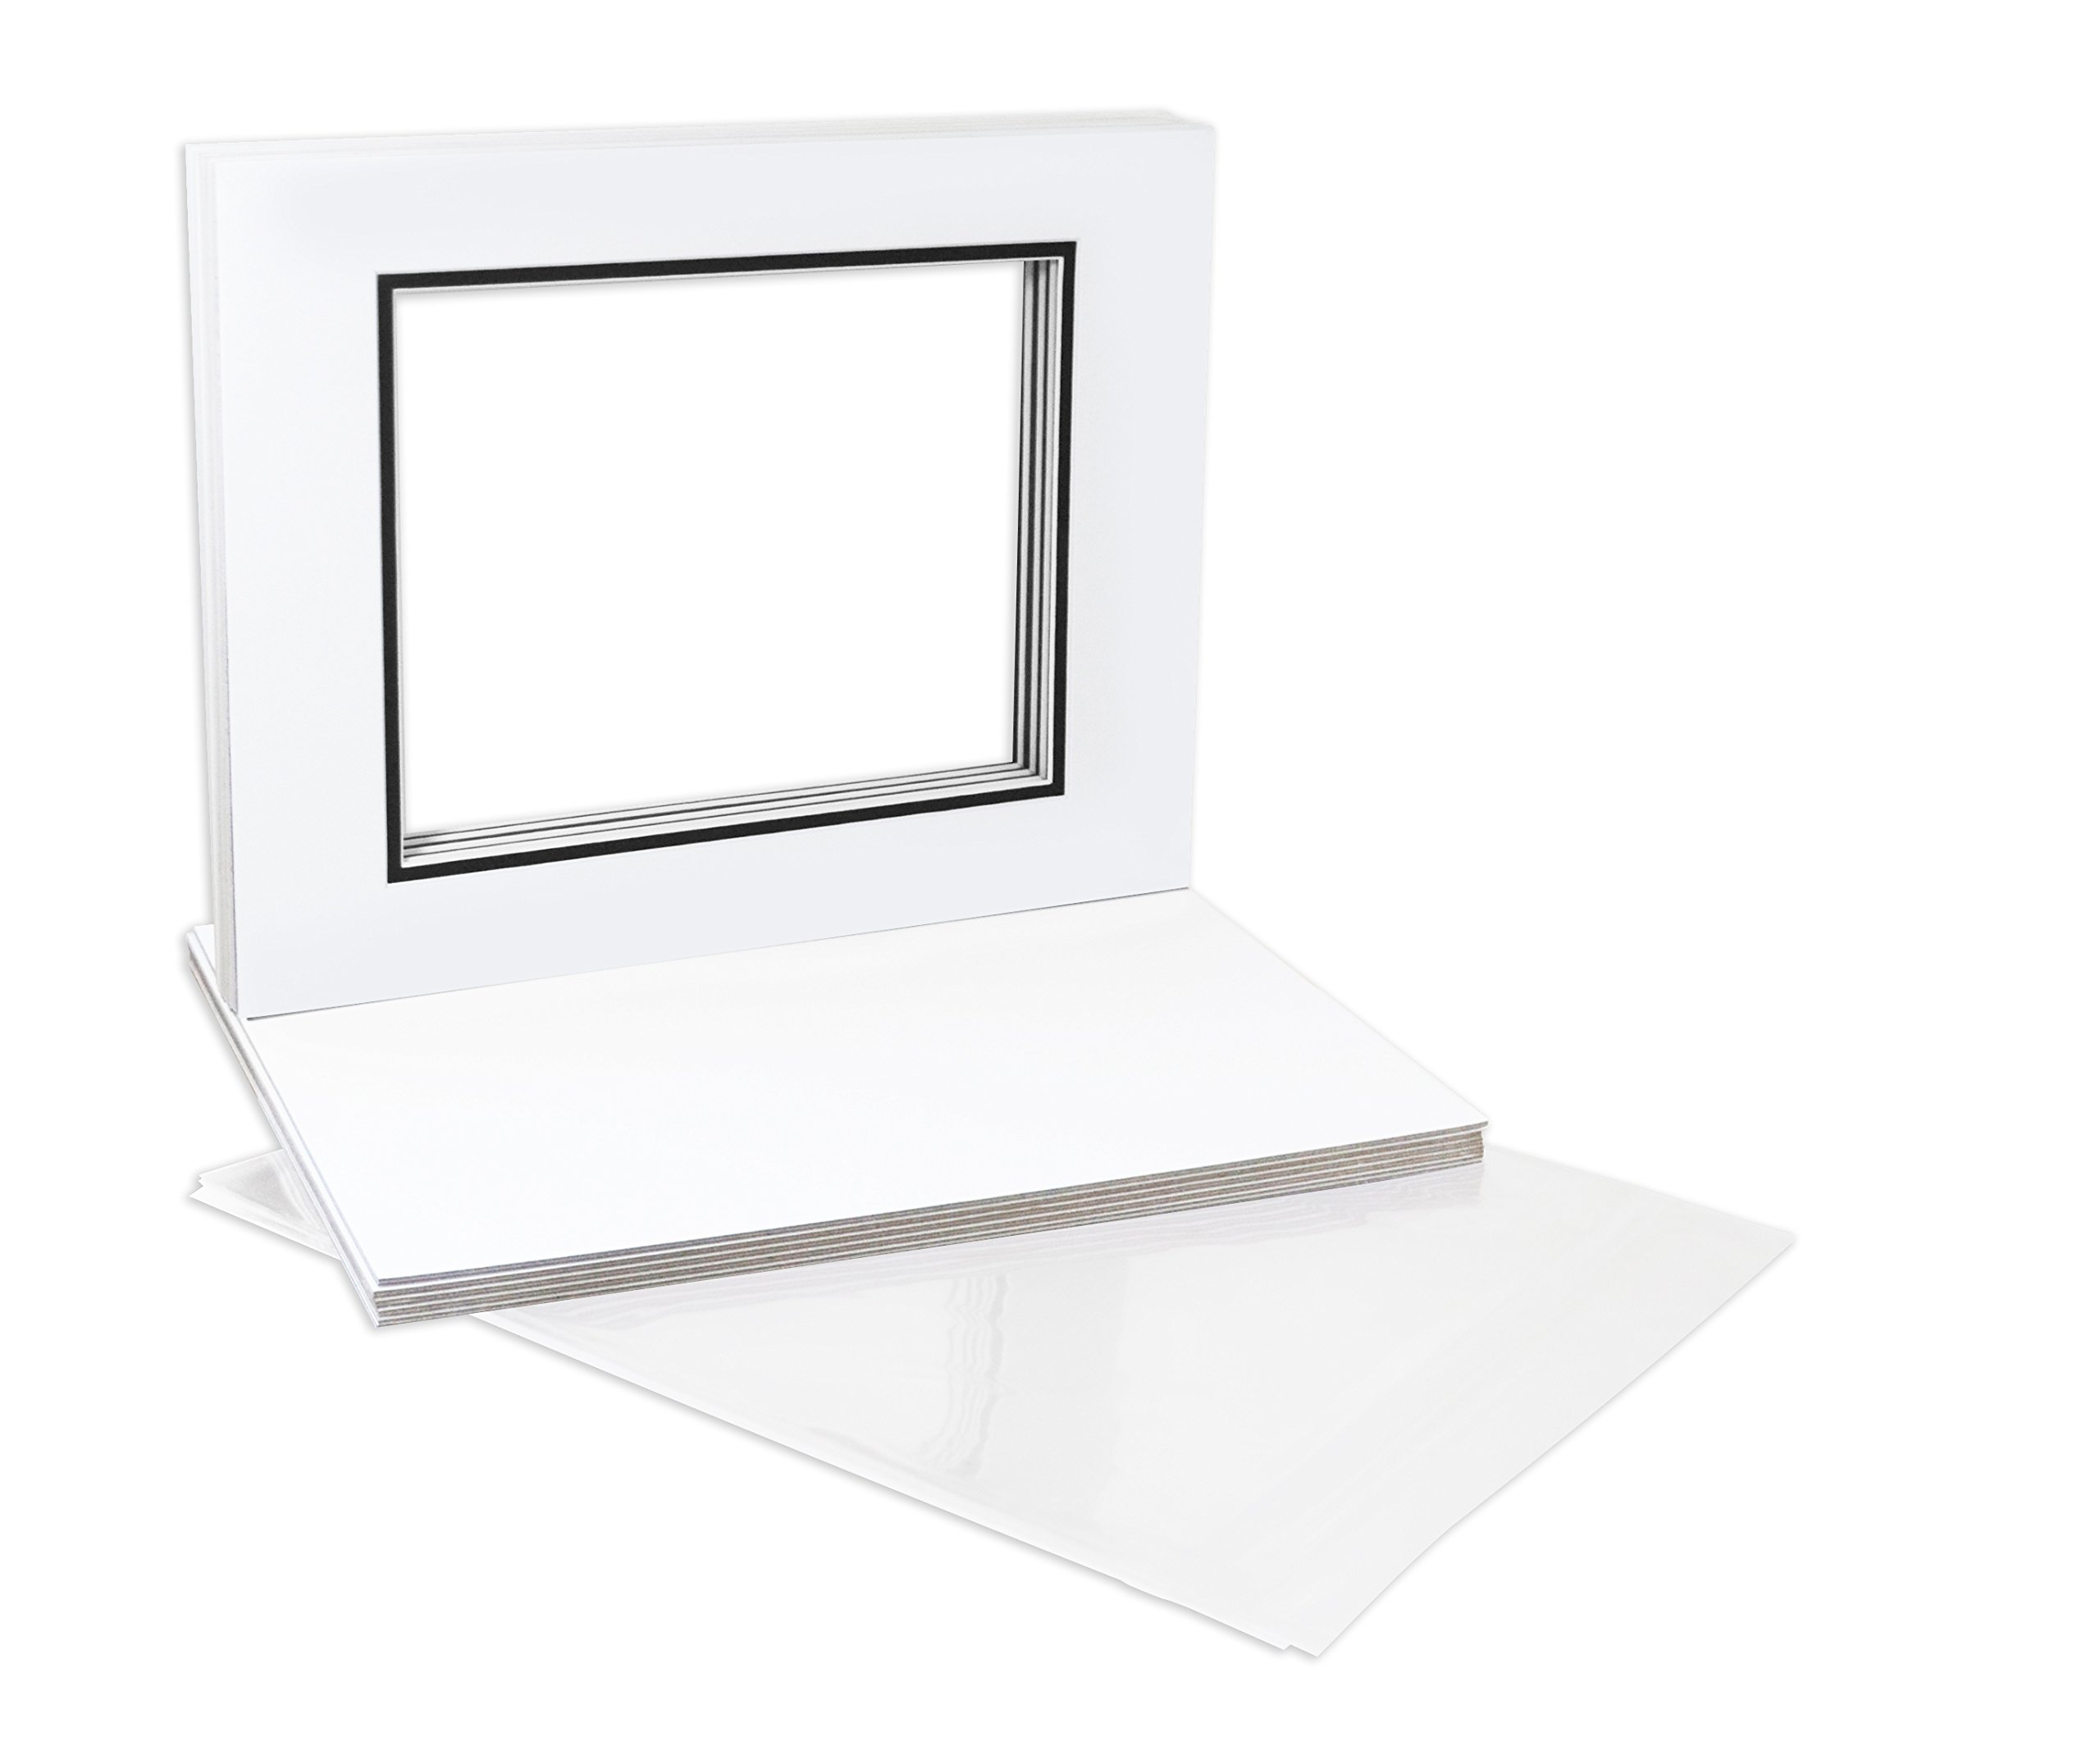 Golden State Art, Pack of 10 11x14 Double Picture Mats with White Core Bevel Cut for 8x10 Pictures + Backing + Bags, White Over Black by Golden State Art